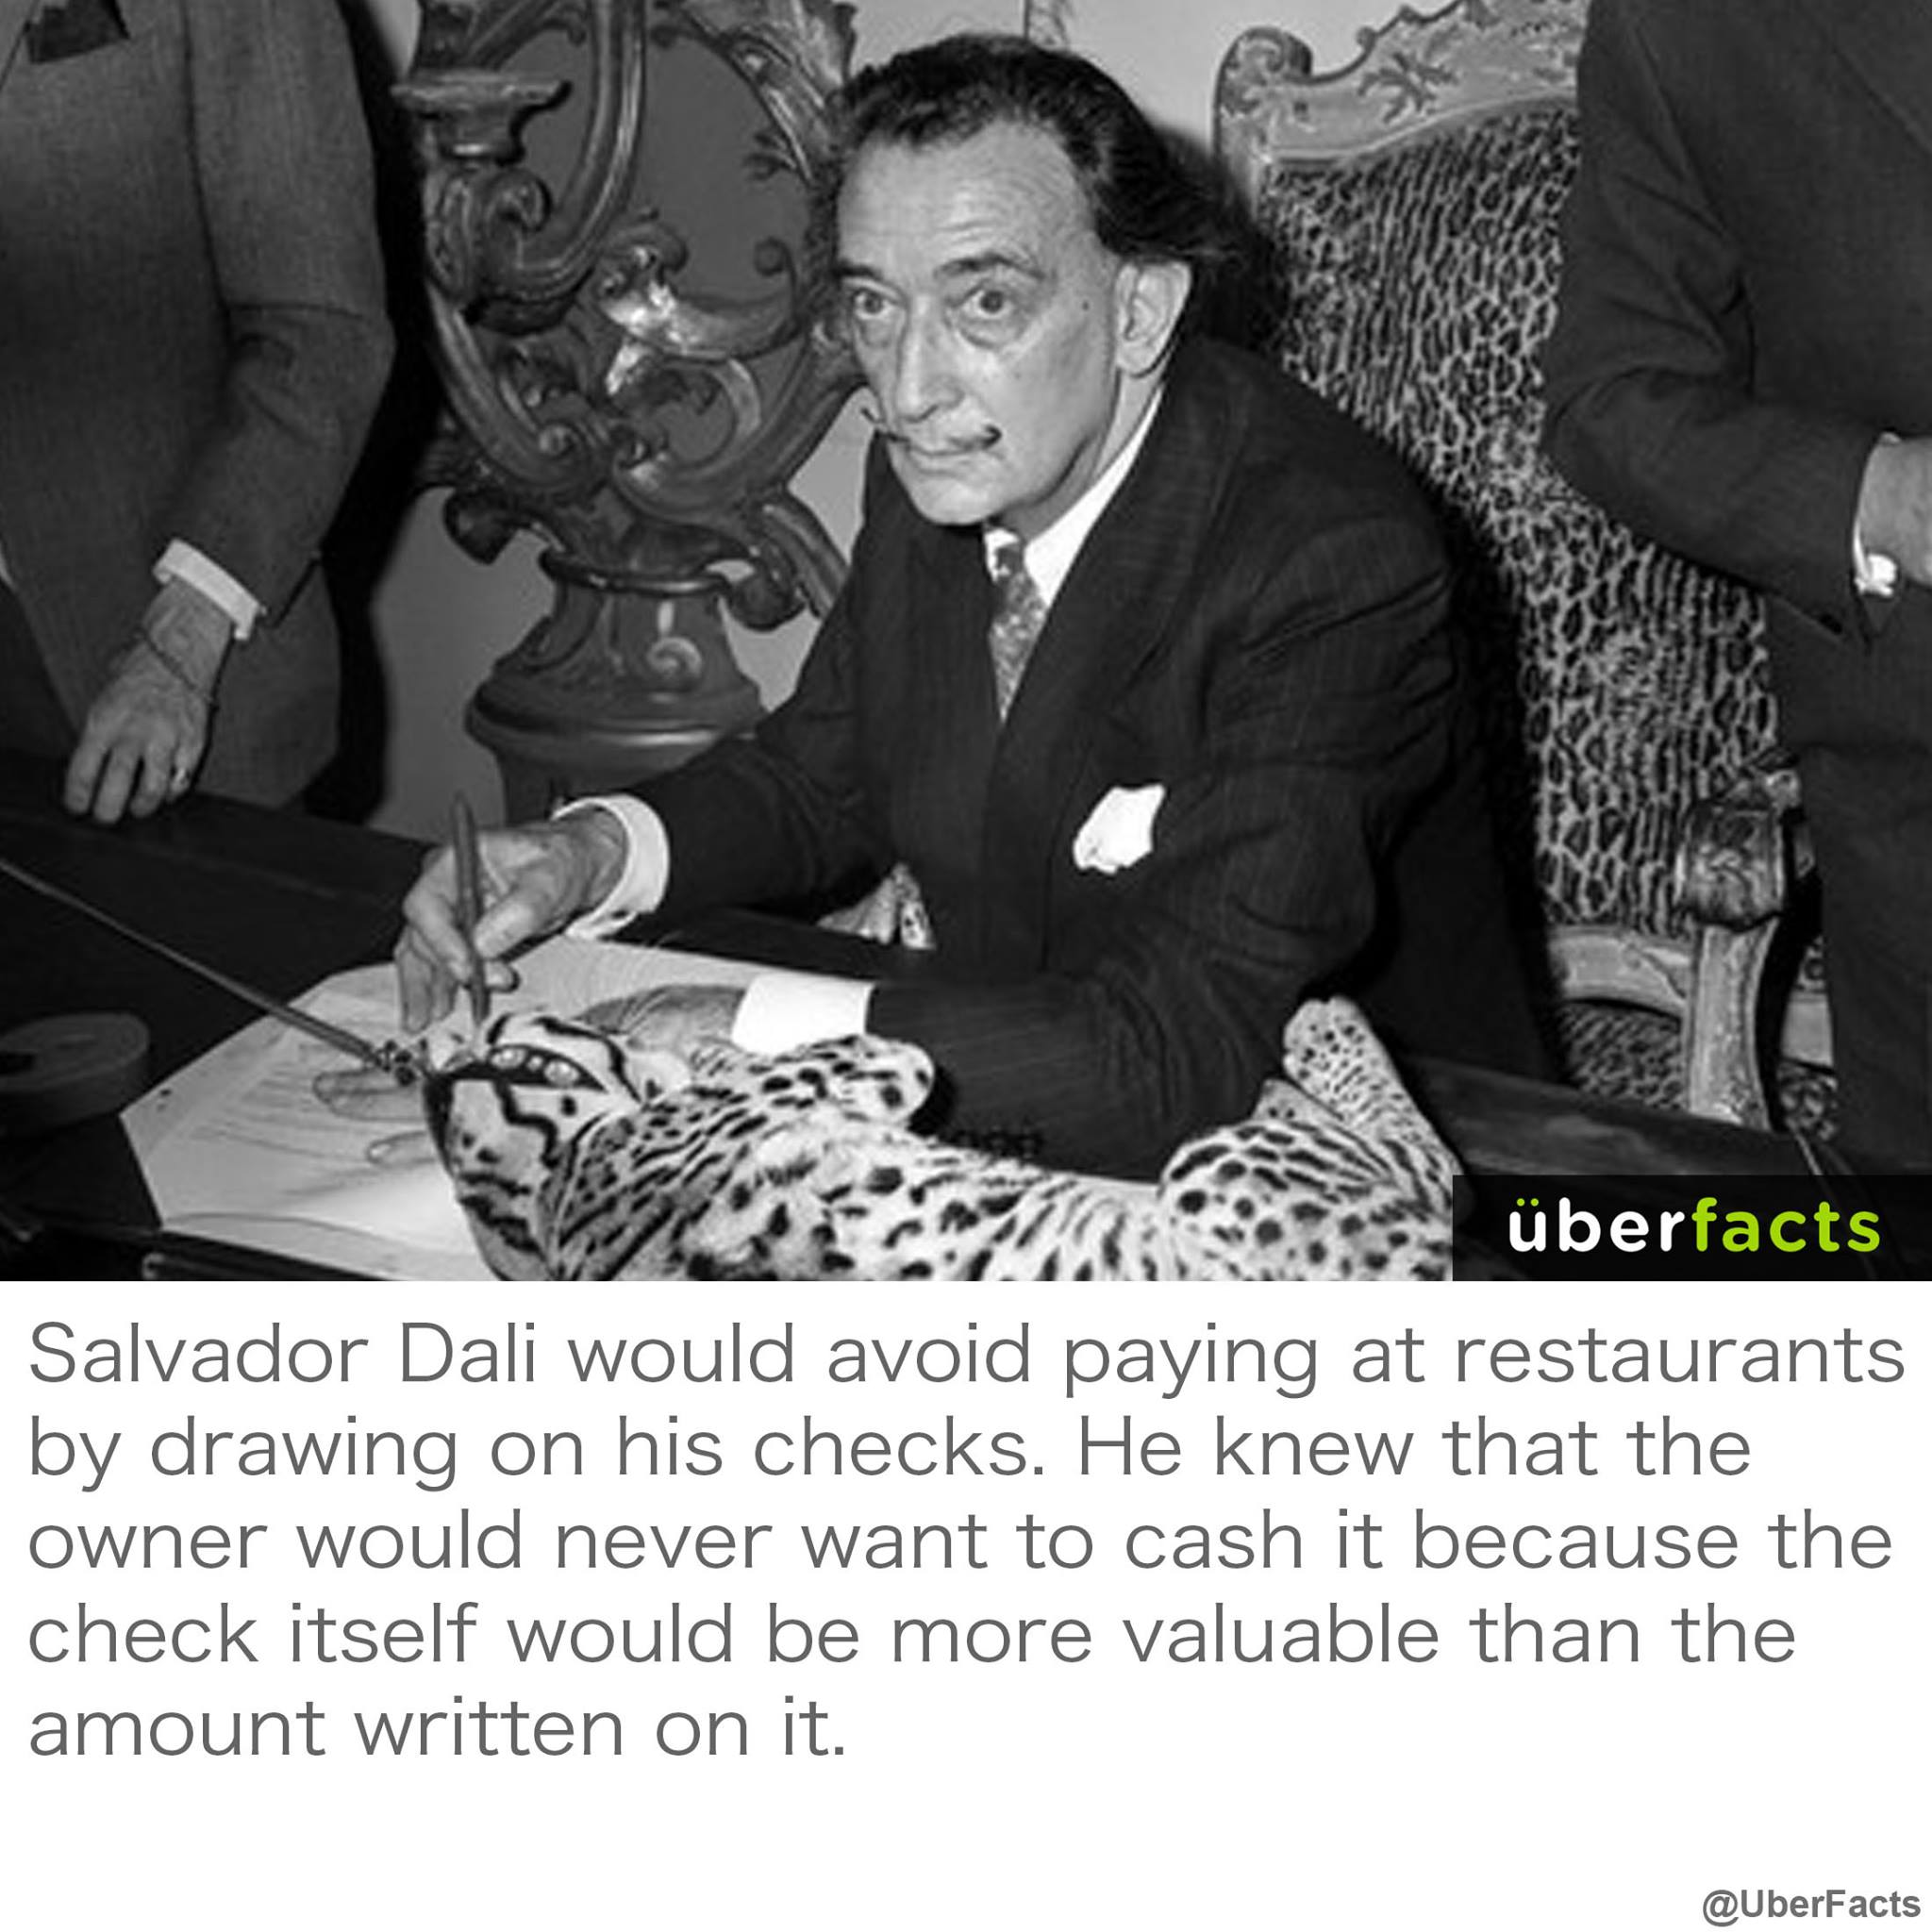 salvador dali would avoid paying at restaurants by drawing on his checks, he knew that the owner would never want to cash it because the check itself would be more valuable than the amount written on it